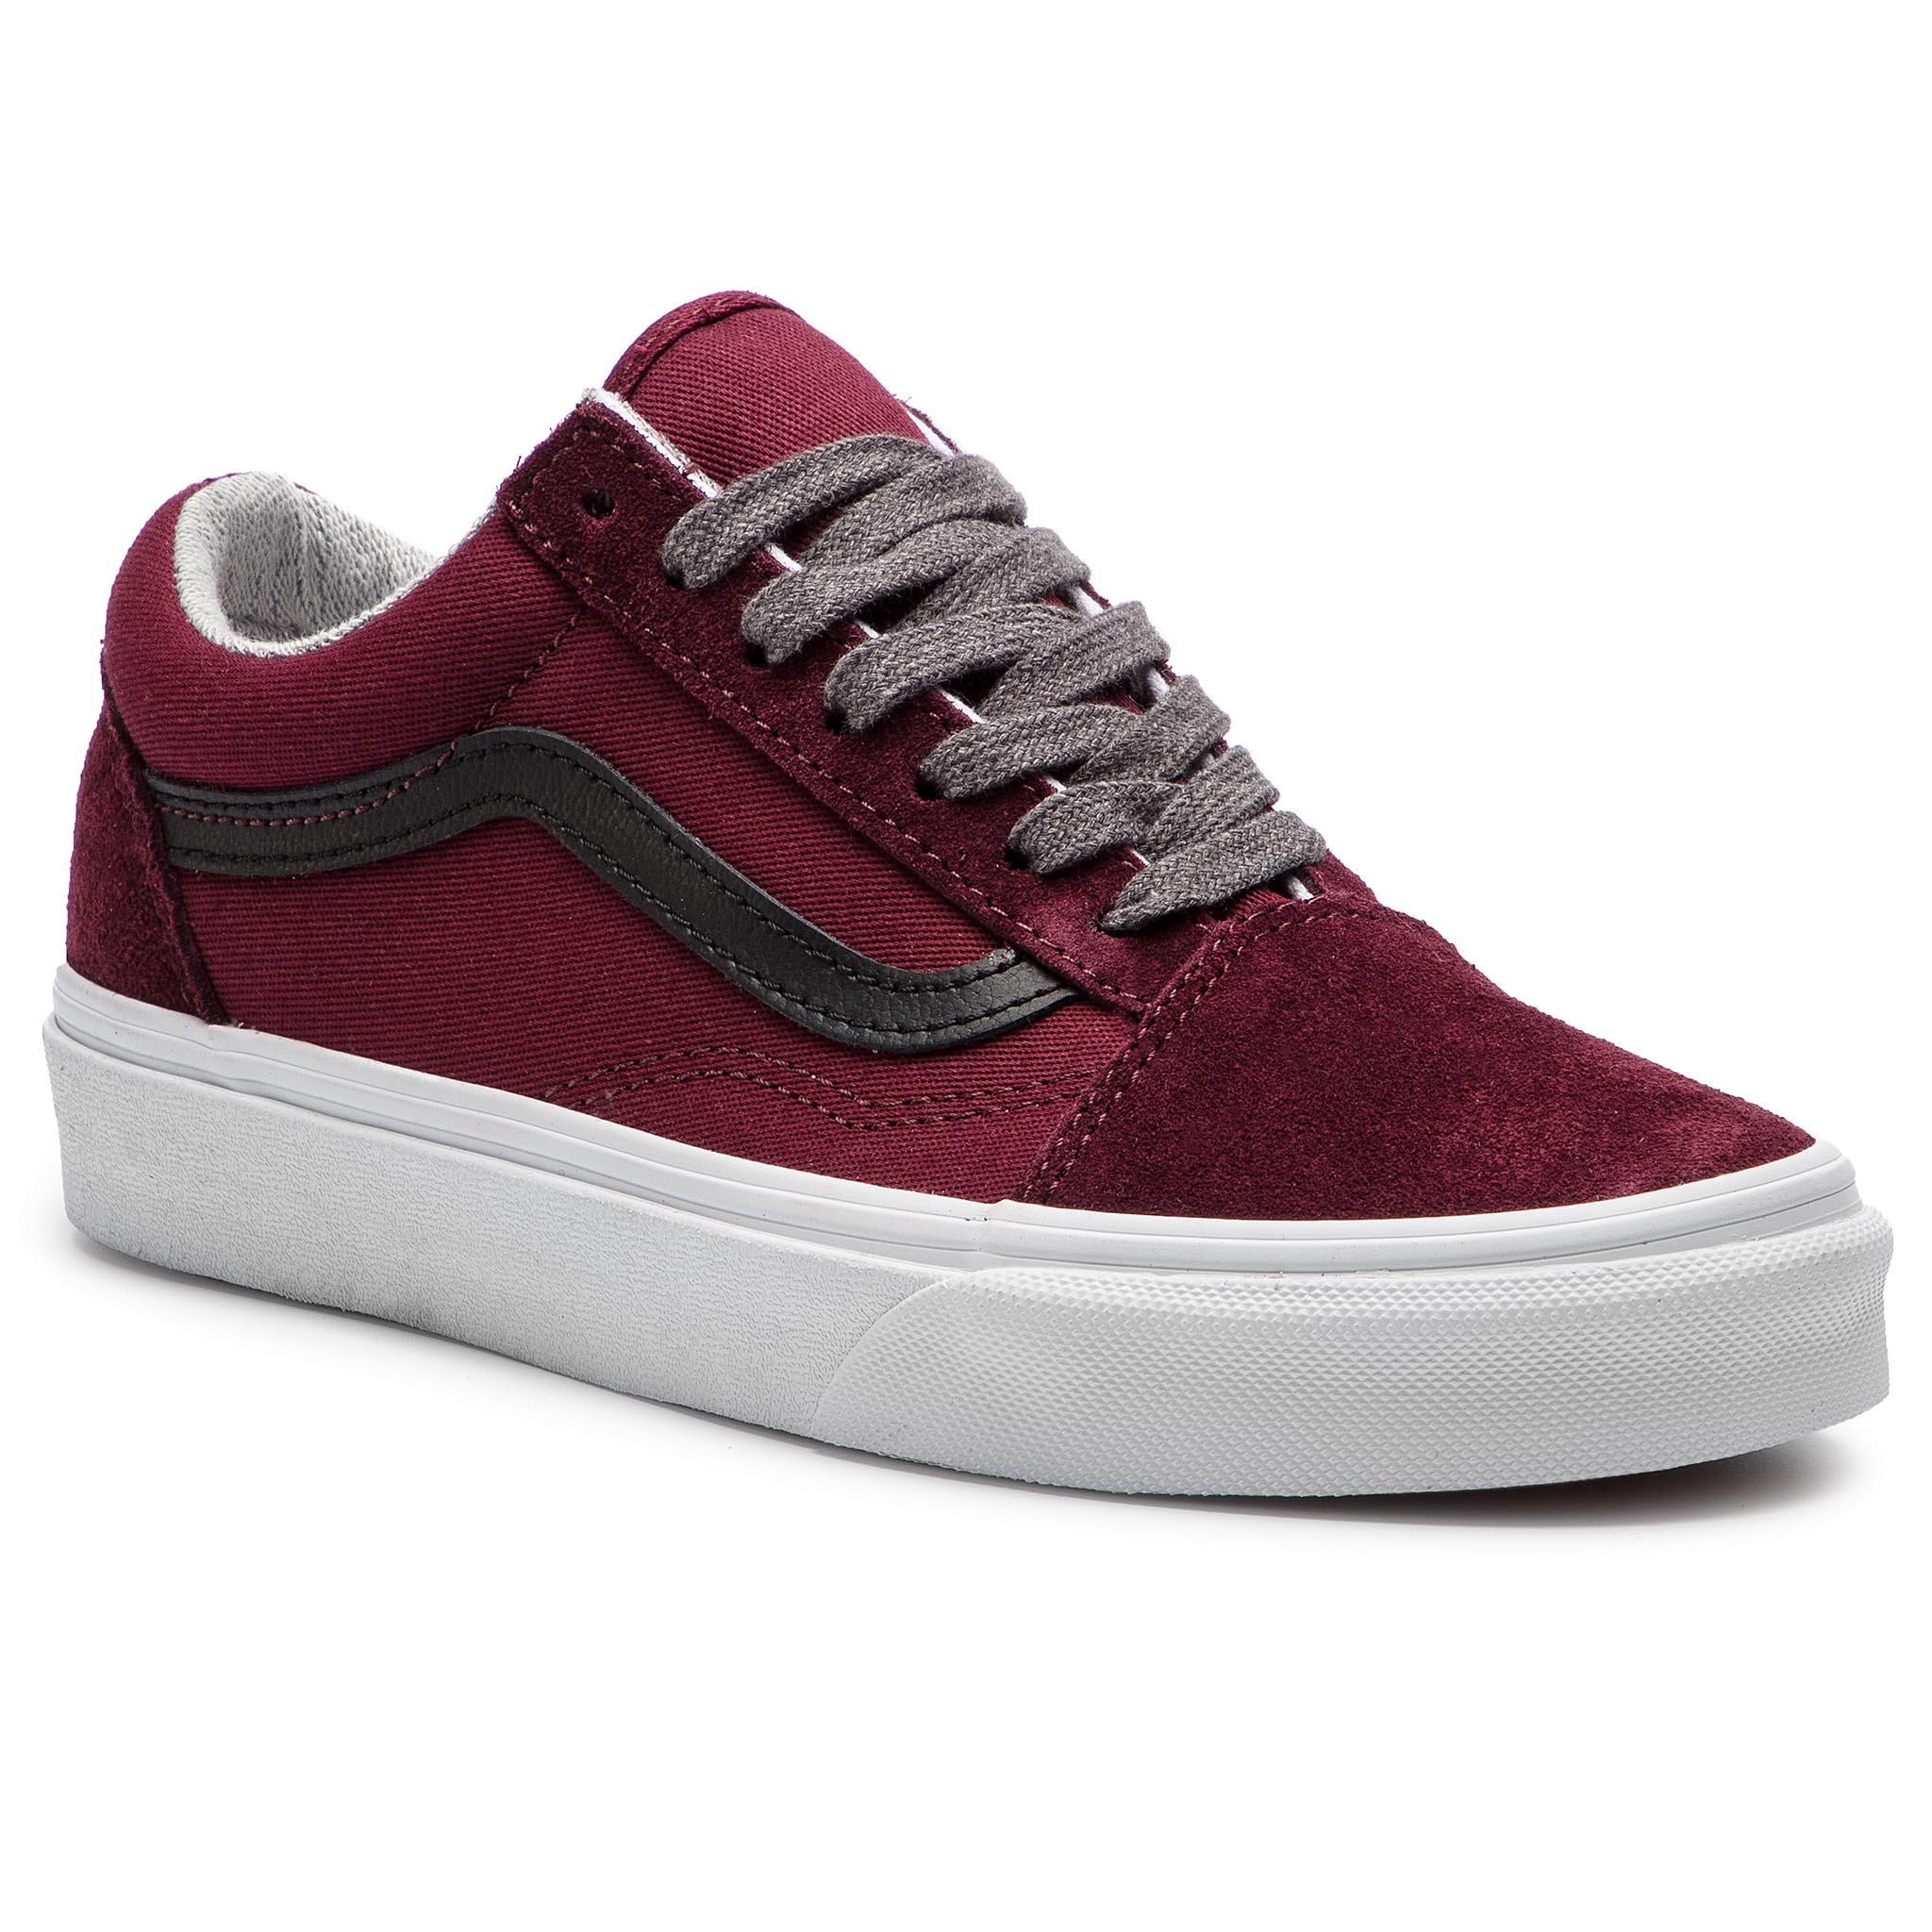 Teniși VANS - Old Skool VN0A38G1UP71 (Jersey Lace) Port Royale